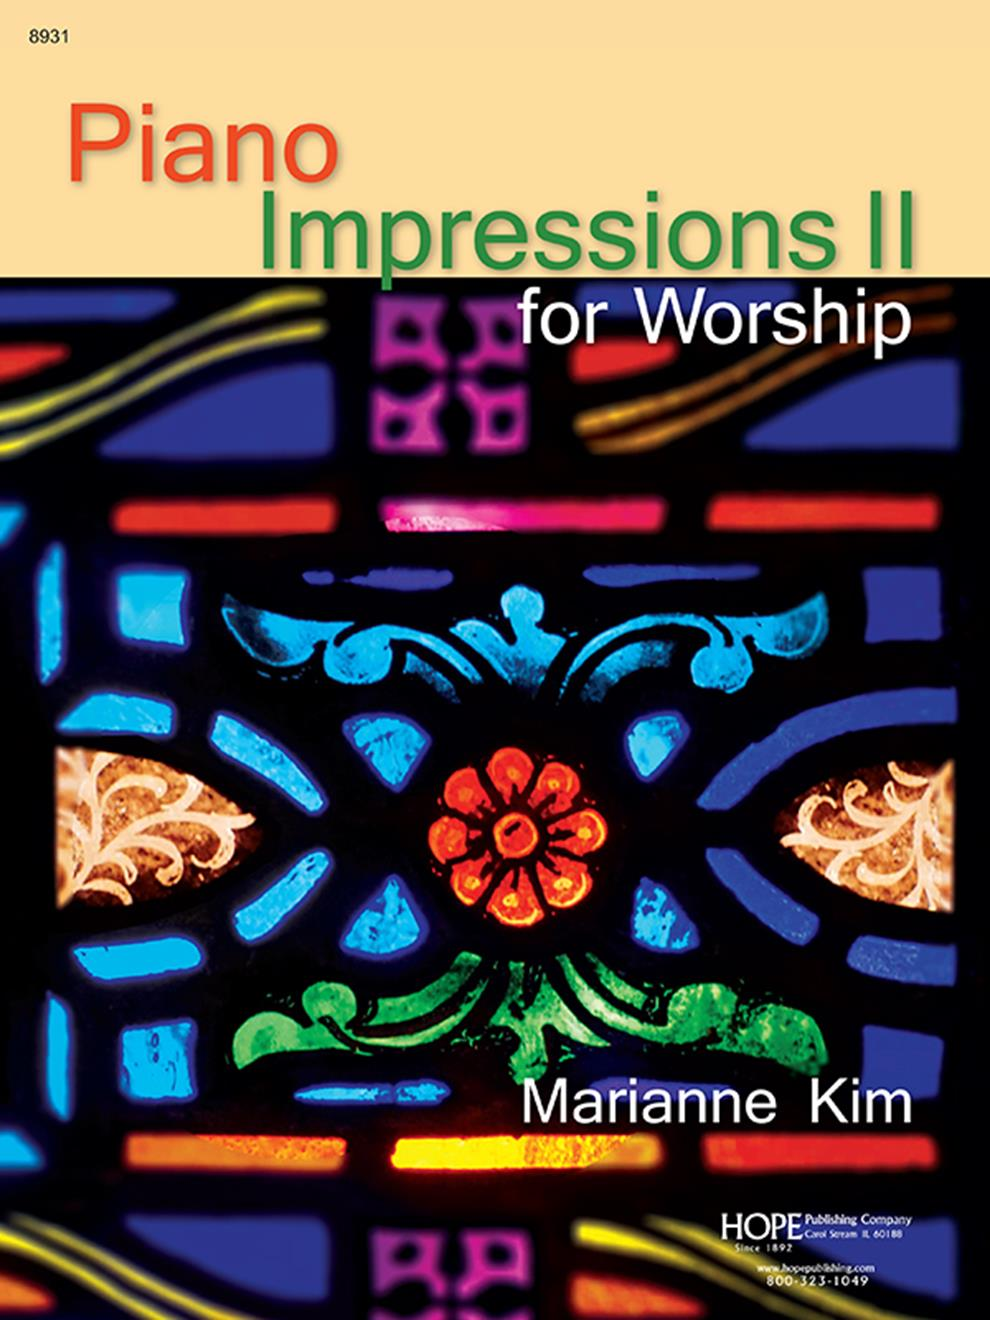 Piano Impressions for Worship 2 - Score Cover Image